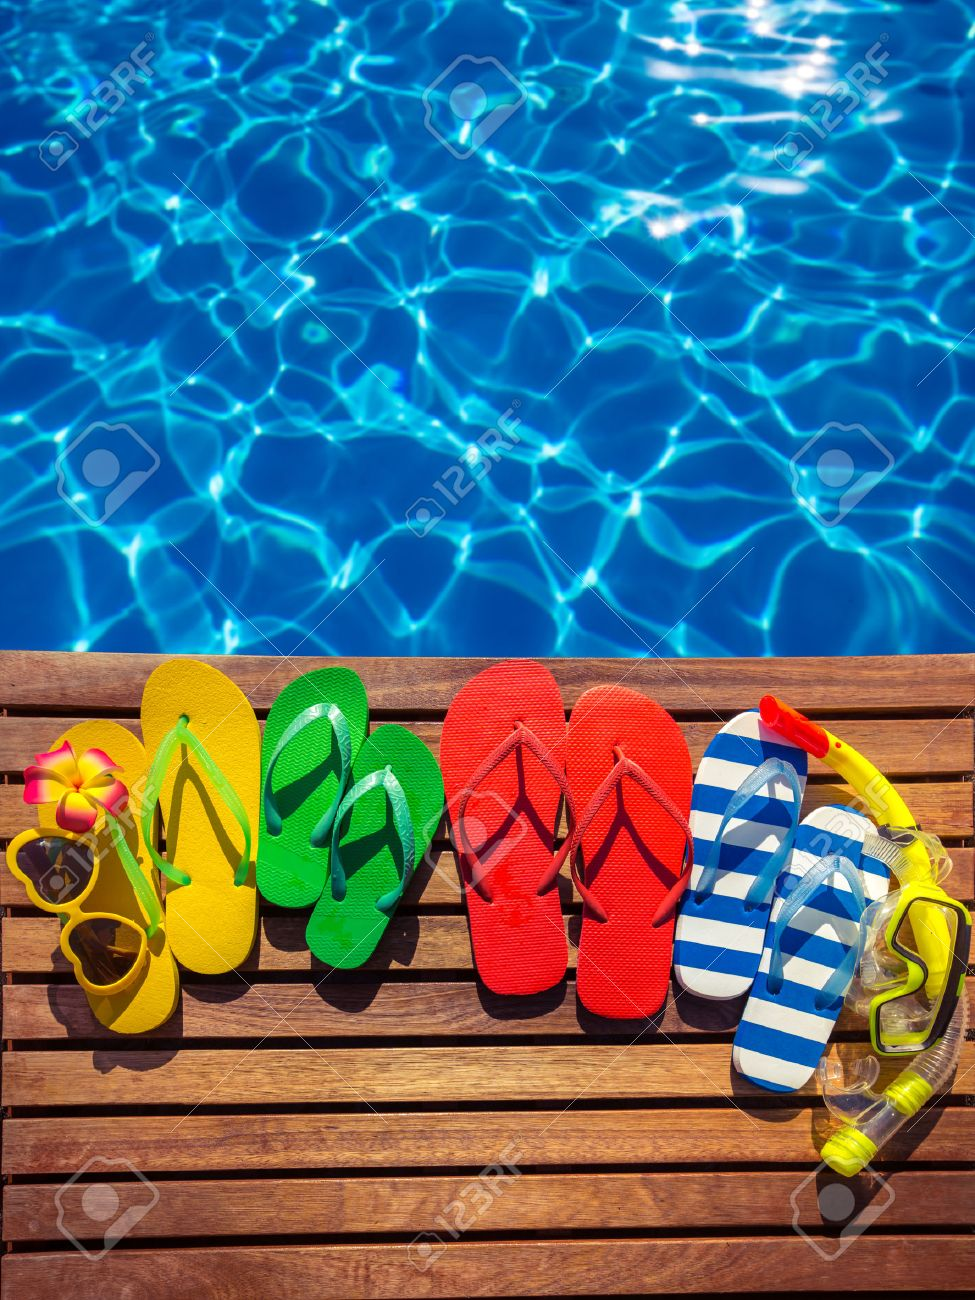 87ebdadff Multicolor flip-flops on wooden planks against blue water background.  Summer family vacation concept